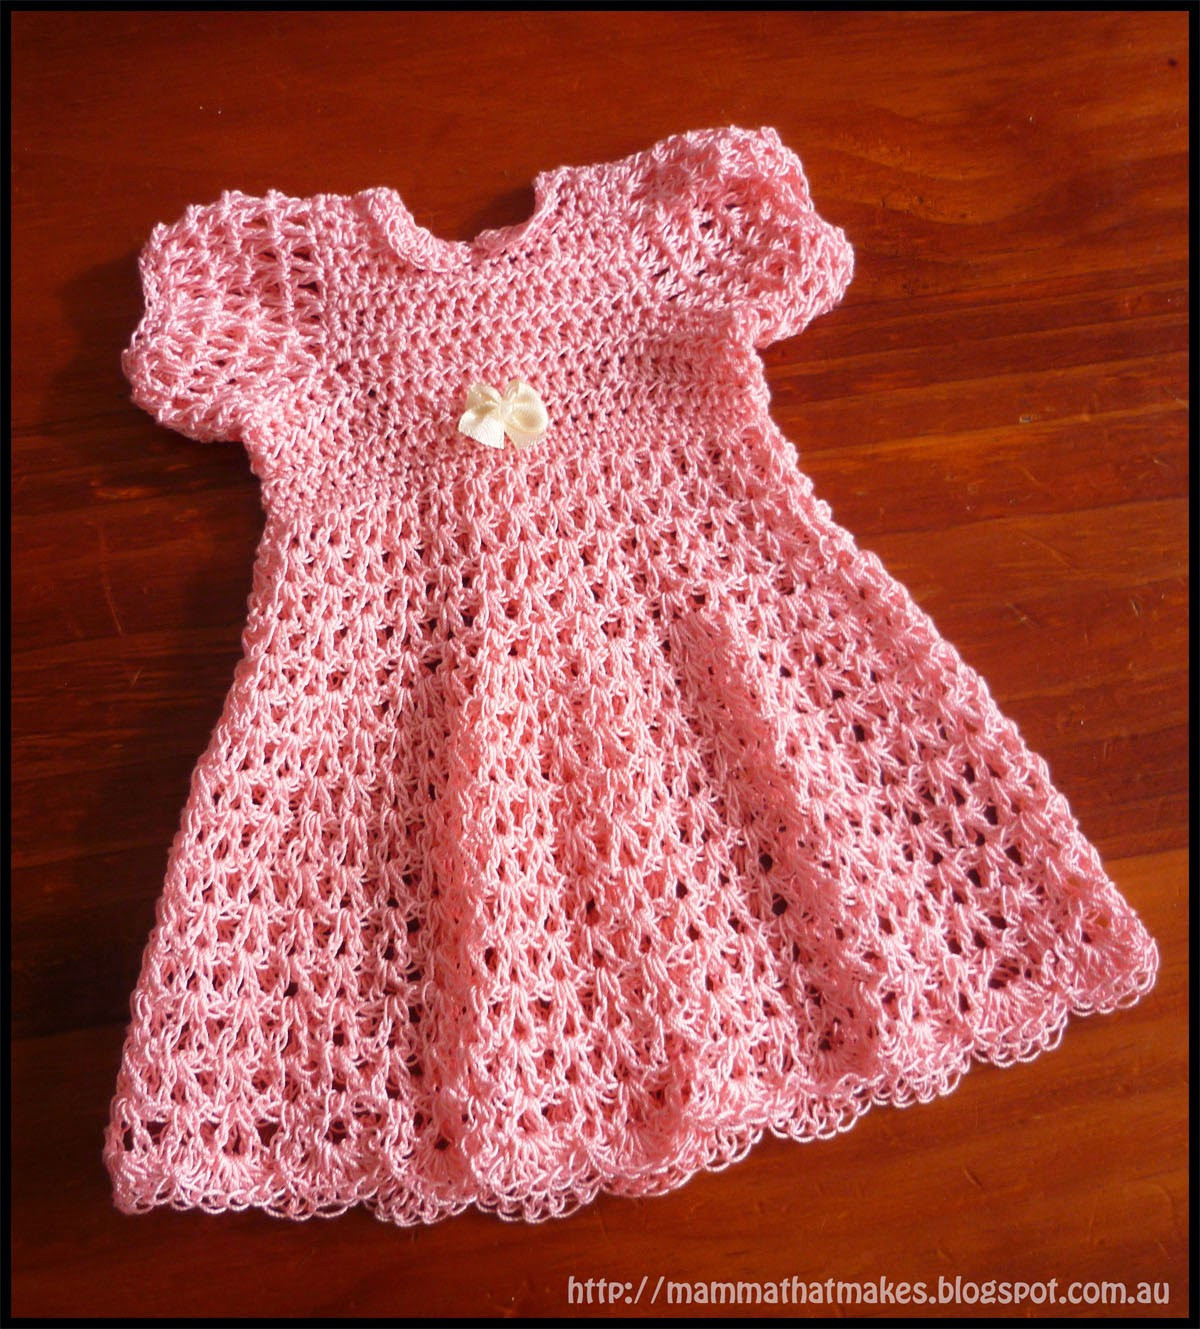 Free Crochet Baby Dress Patterns Luxury 16 Patterns for Cute Crochet Girls Dresses Of Fresh 40 Pictures Free Crochet Baby Dress Patterns